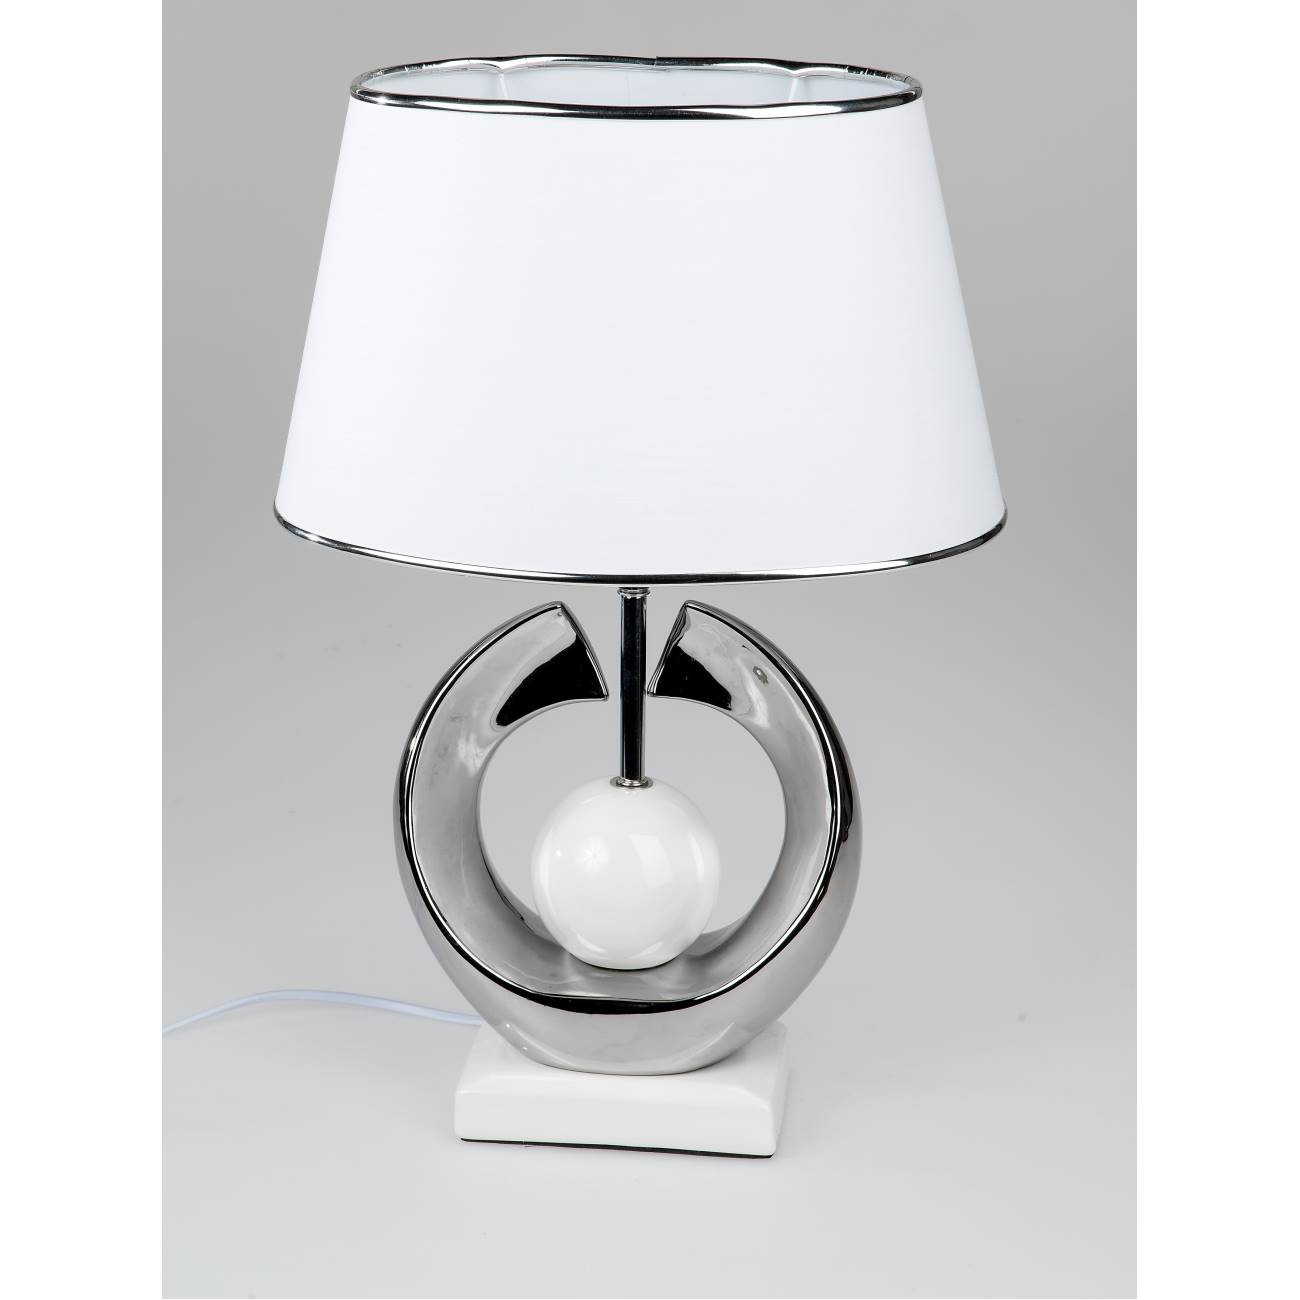 tischlampe leuchte kugel h 52cm wei mit silber keramik. Black Bedroom Furniture Sets. Home Design Ideas